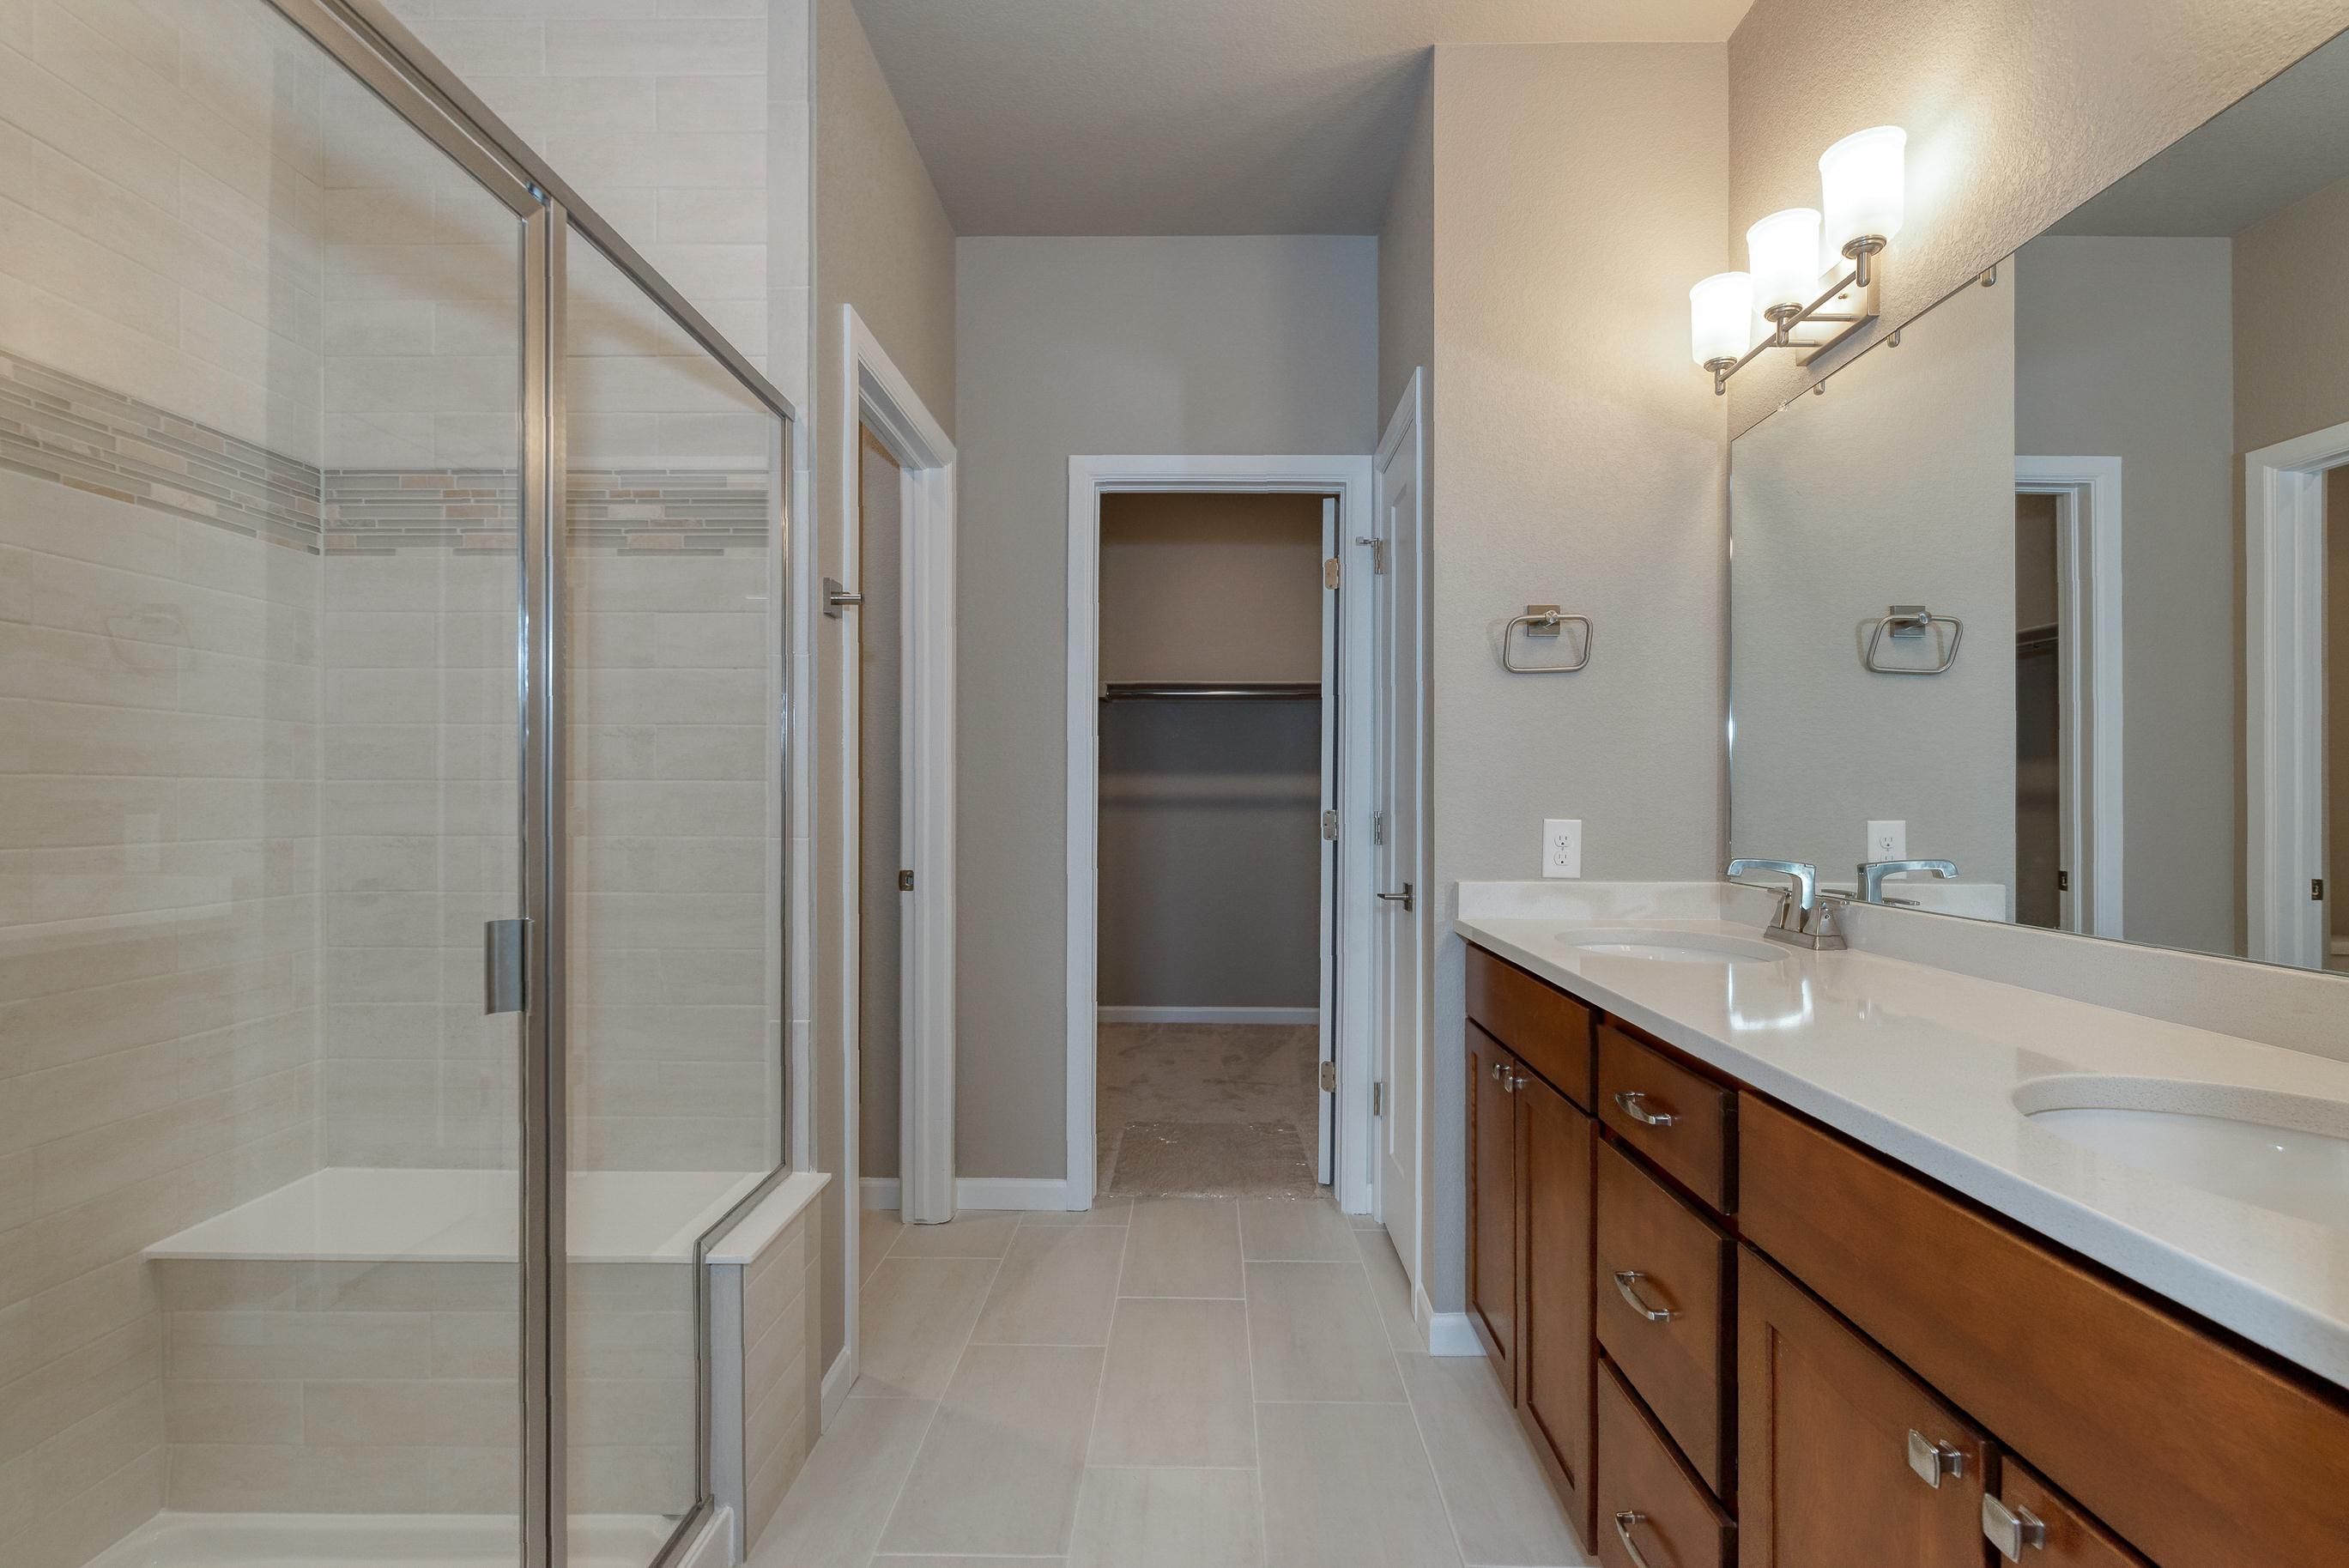 Bathroom featured in The Dupont By JM Weston Homes in Denver, CO